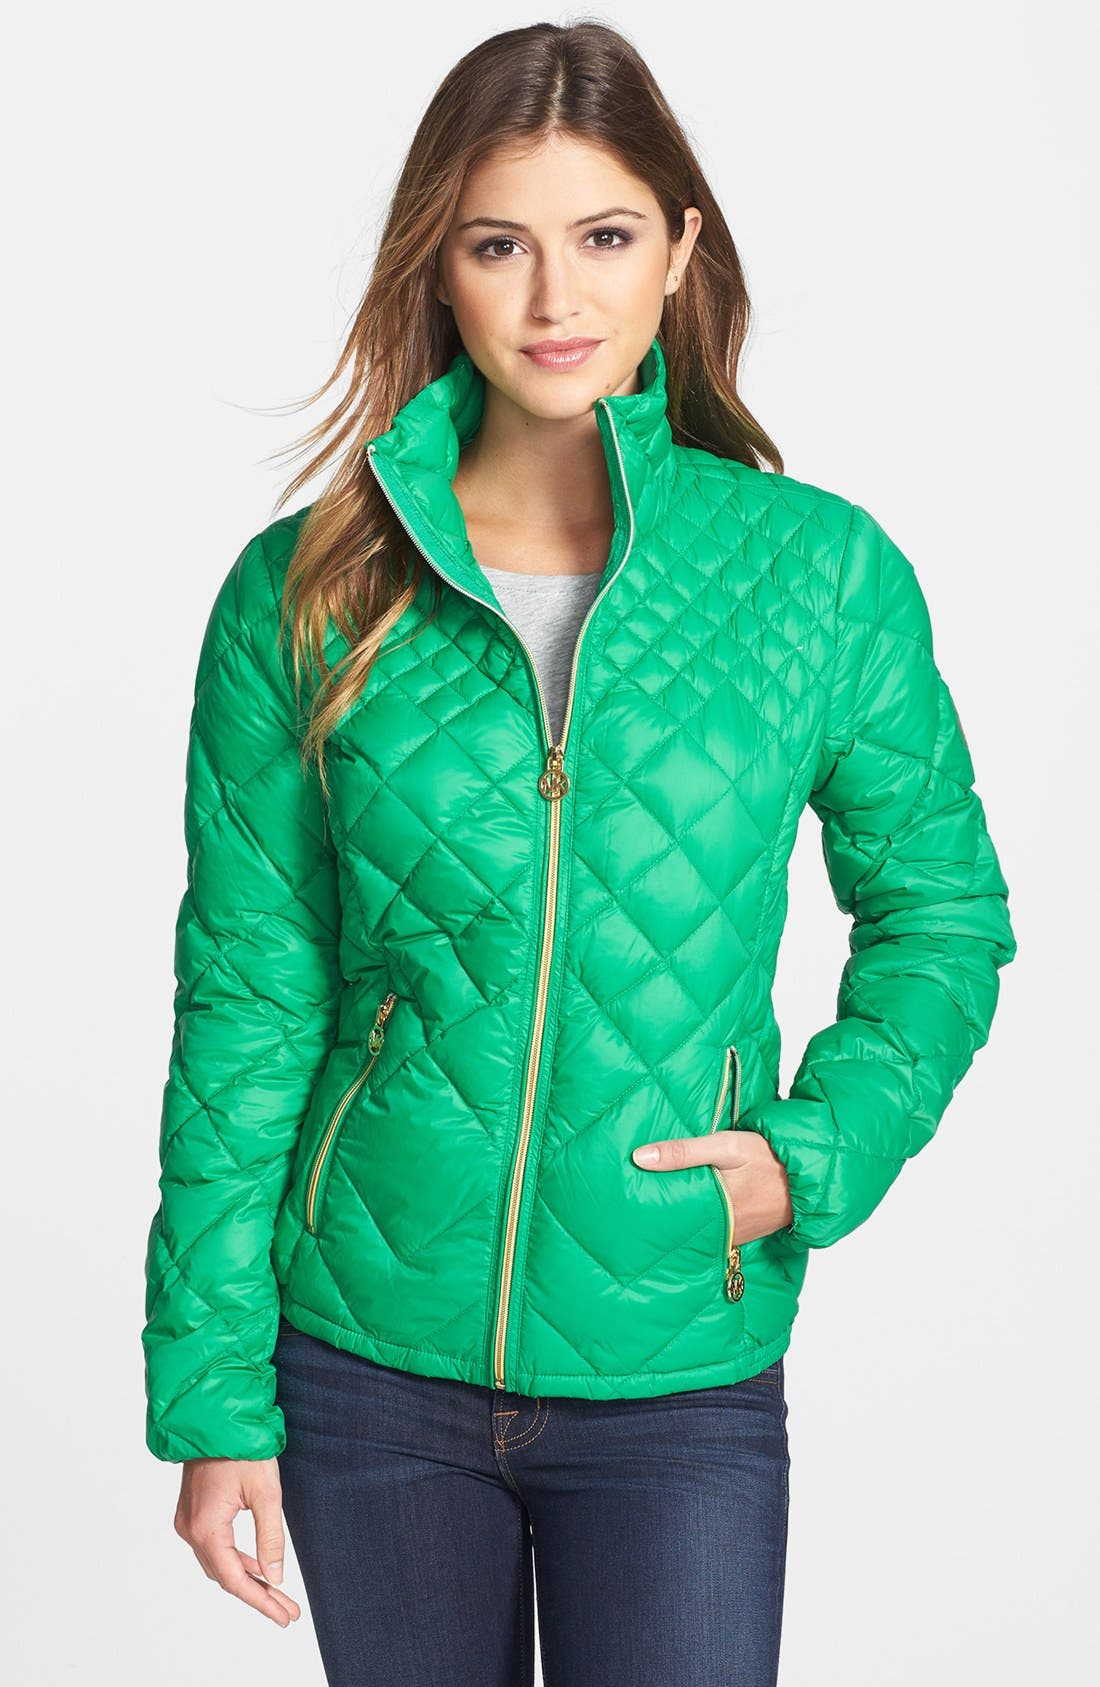 Alternate Image 1 Selected - MICHAEL Michael Kors Diamond Quilted Down Jacket (Online Only)